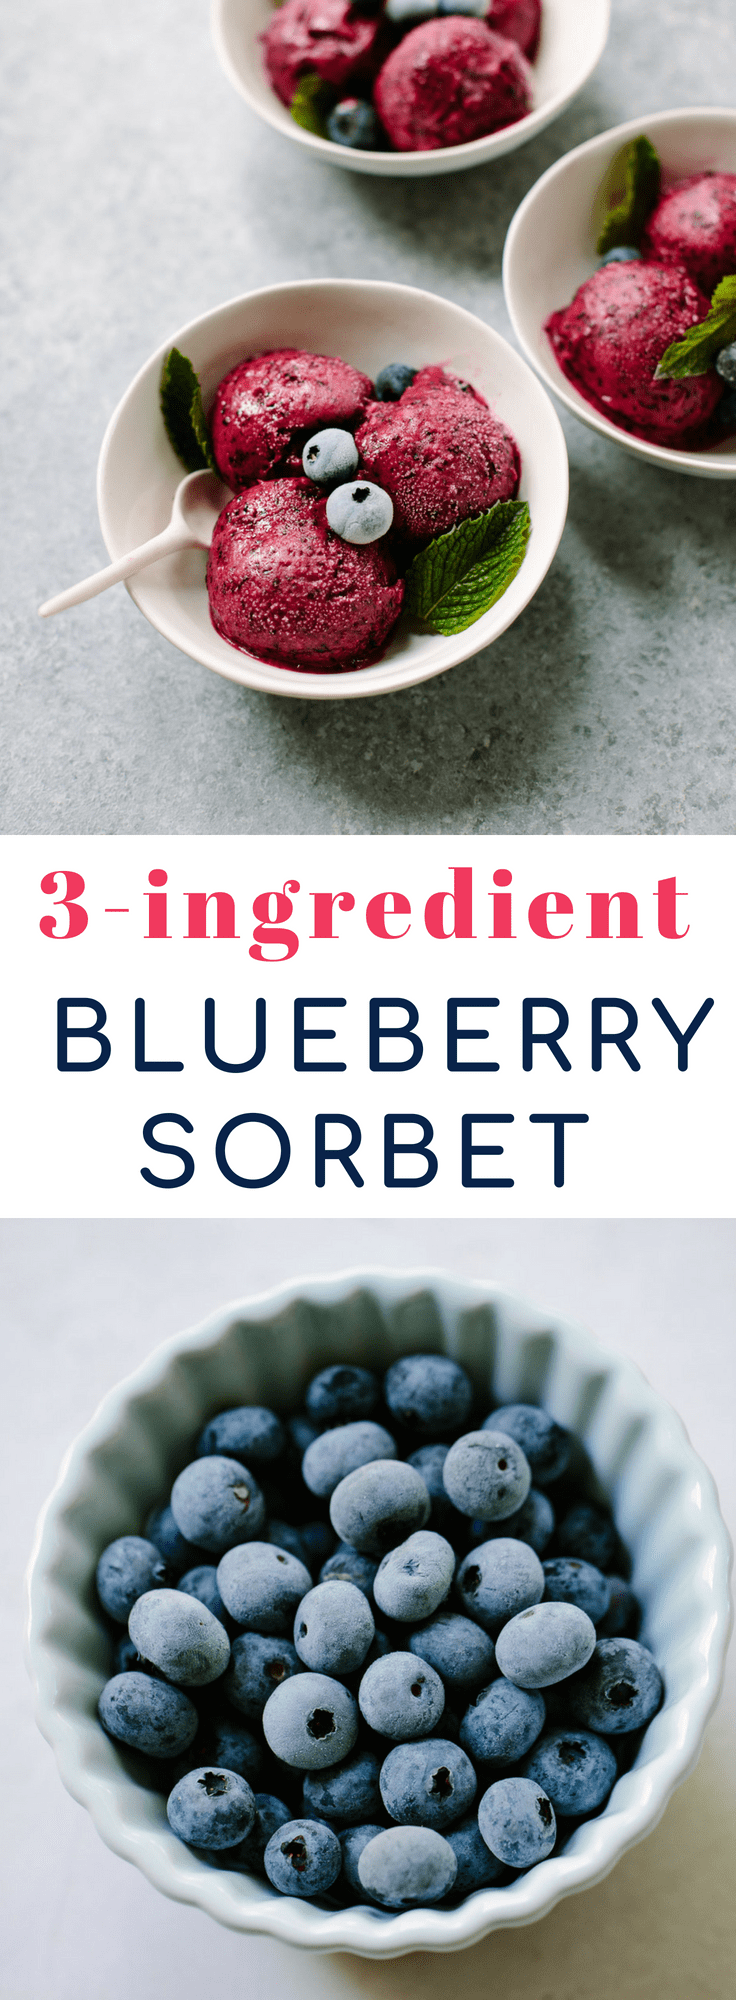 Easy Lemon Blueberry Sorbet